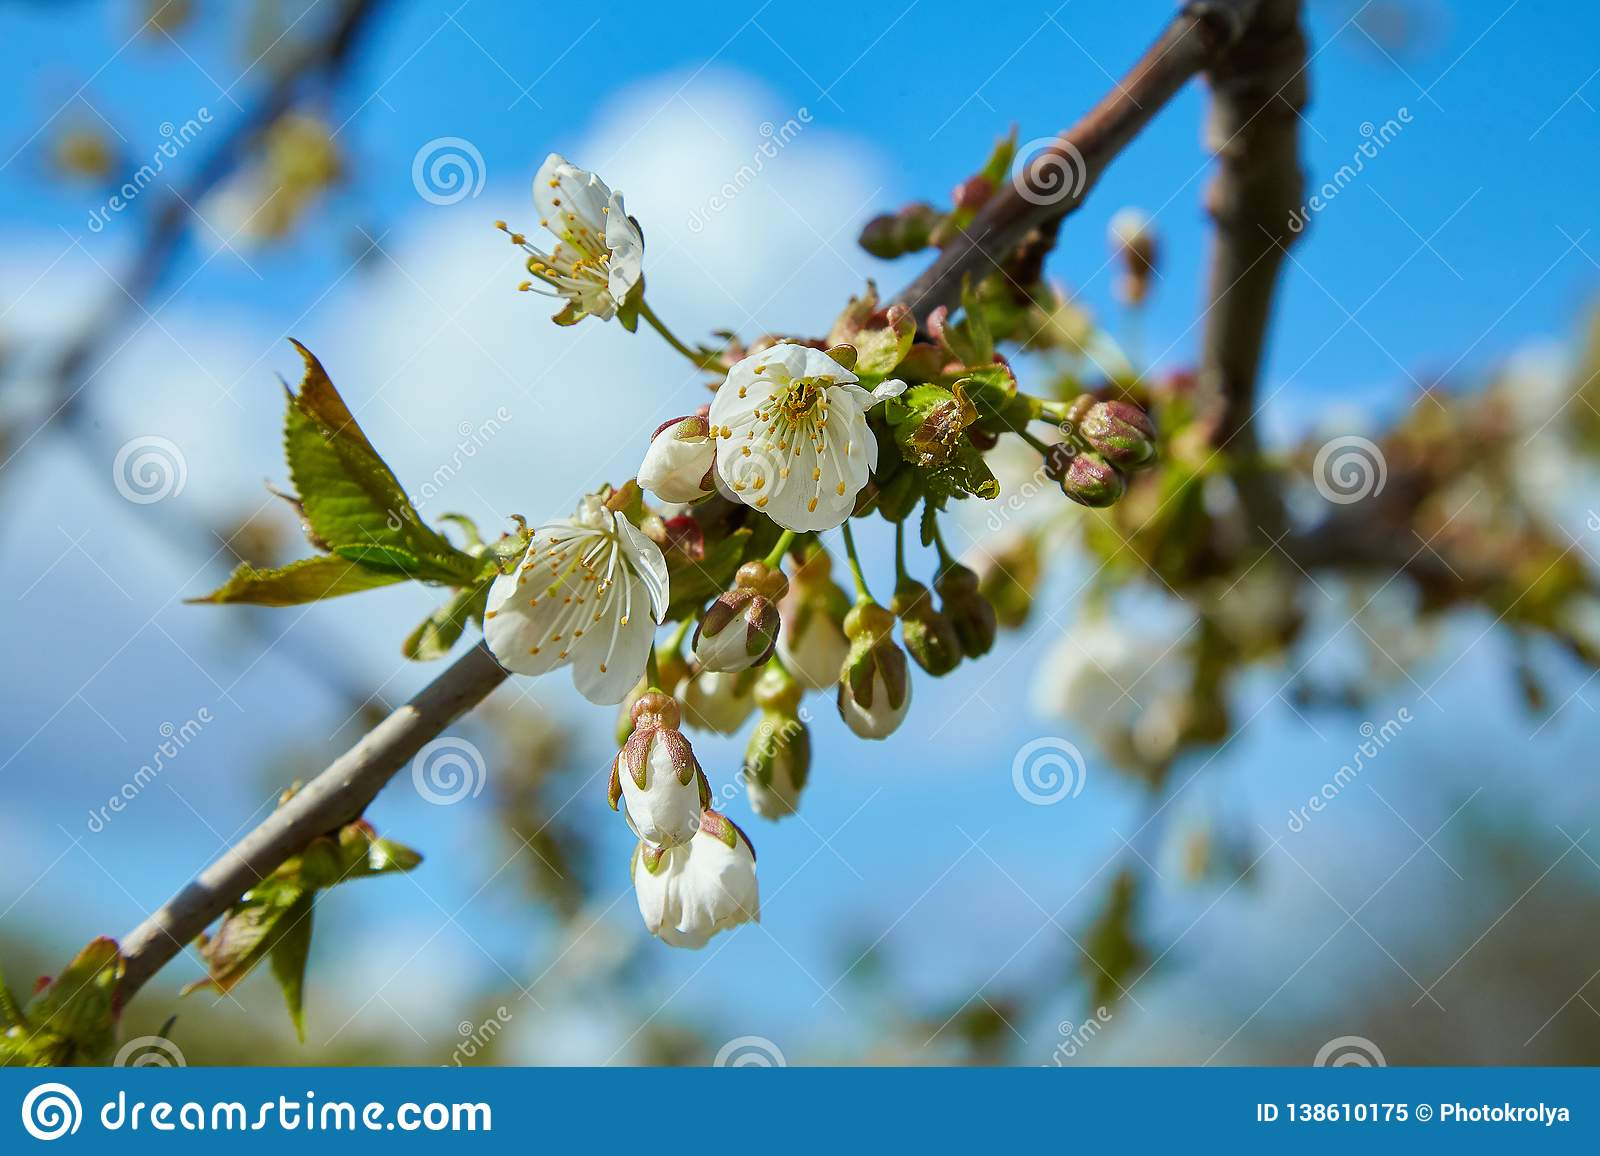 Close-up of a Cherry Plum tree